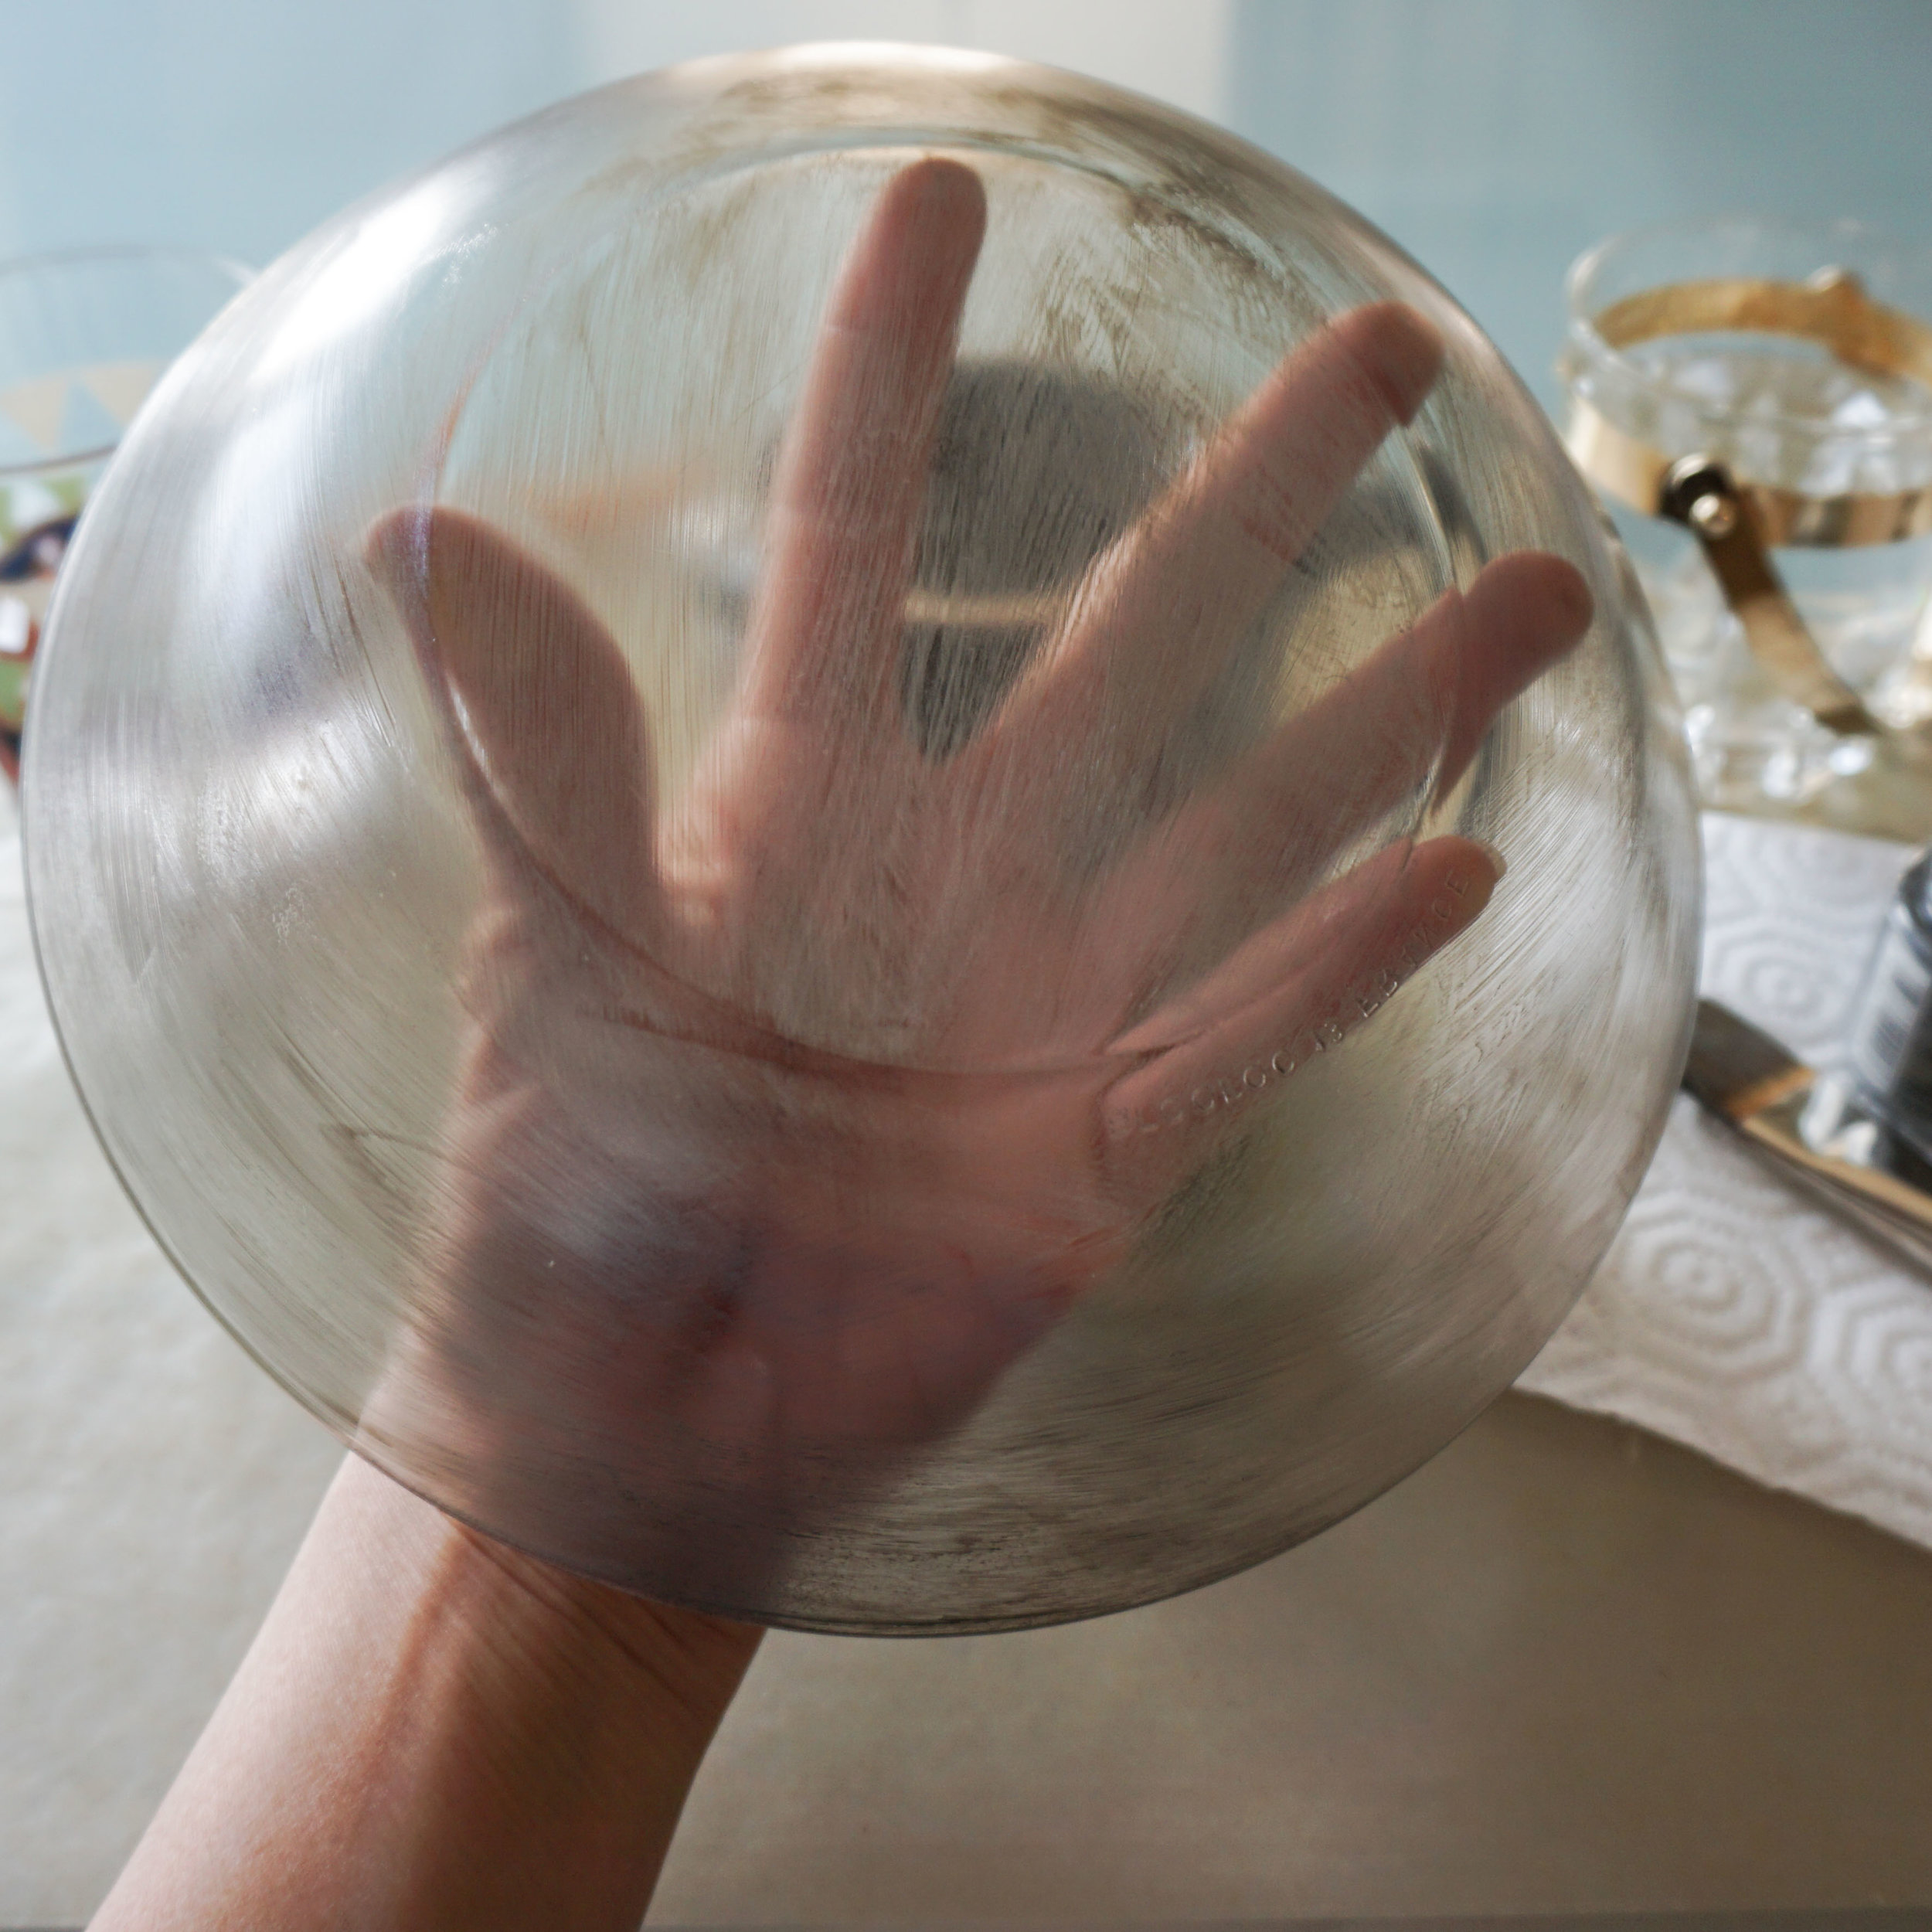 The wrist is a natural pivot for rotating and angling the dish.